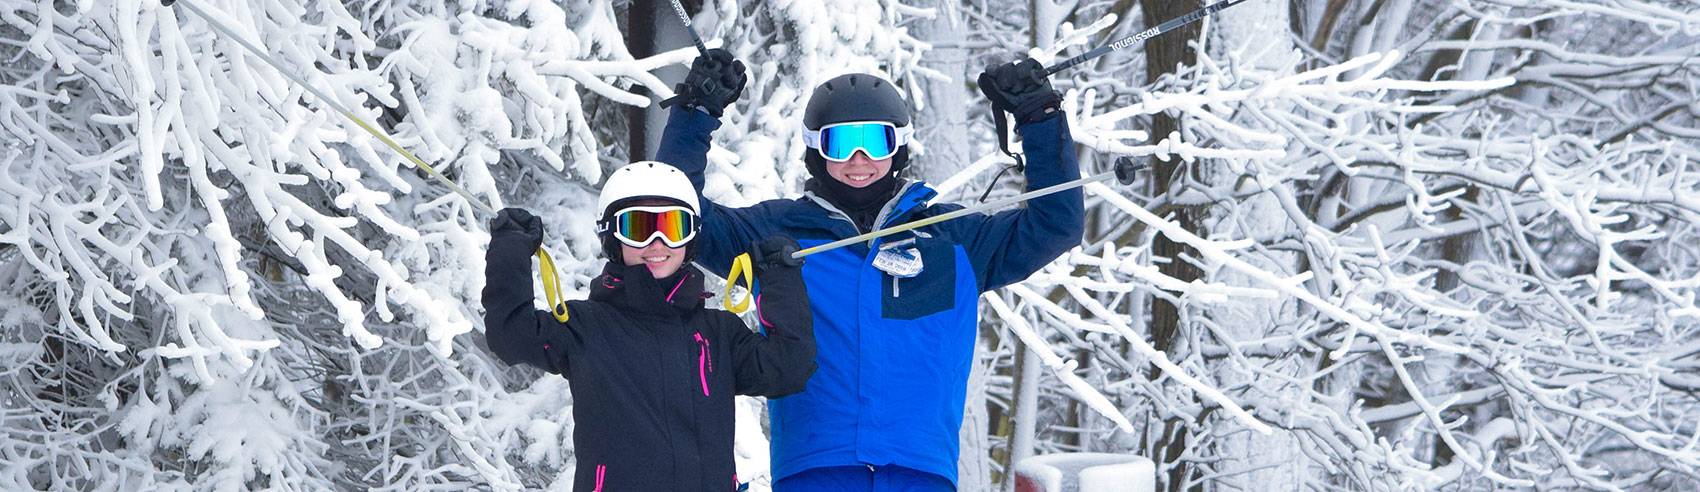 Youth skiers in front of snow covered trees